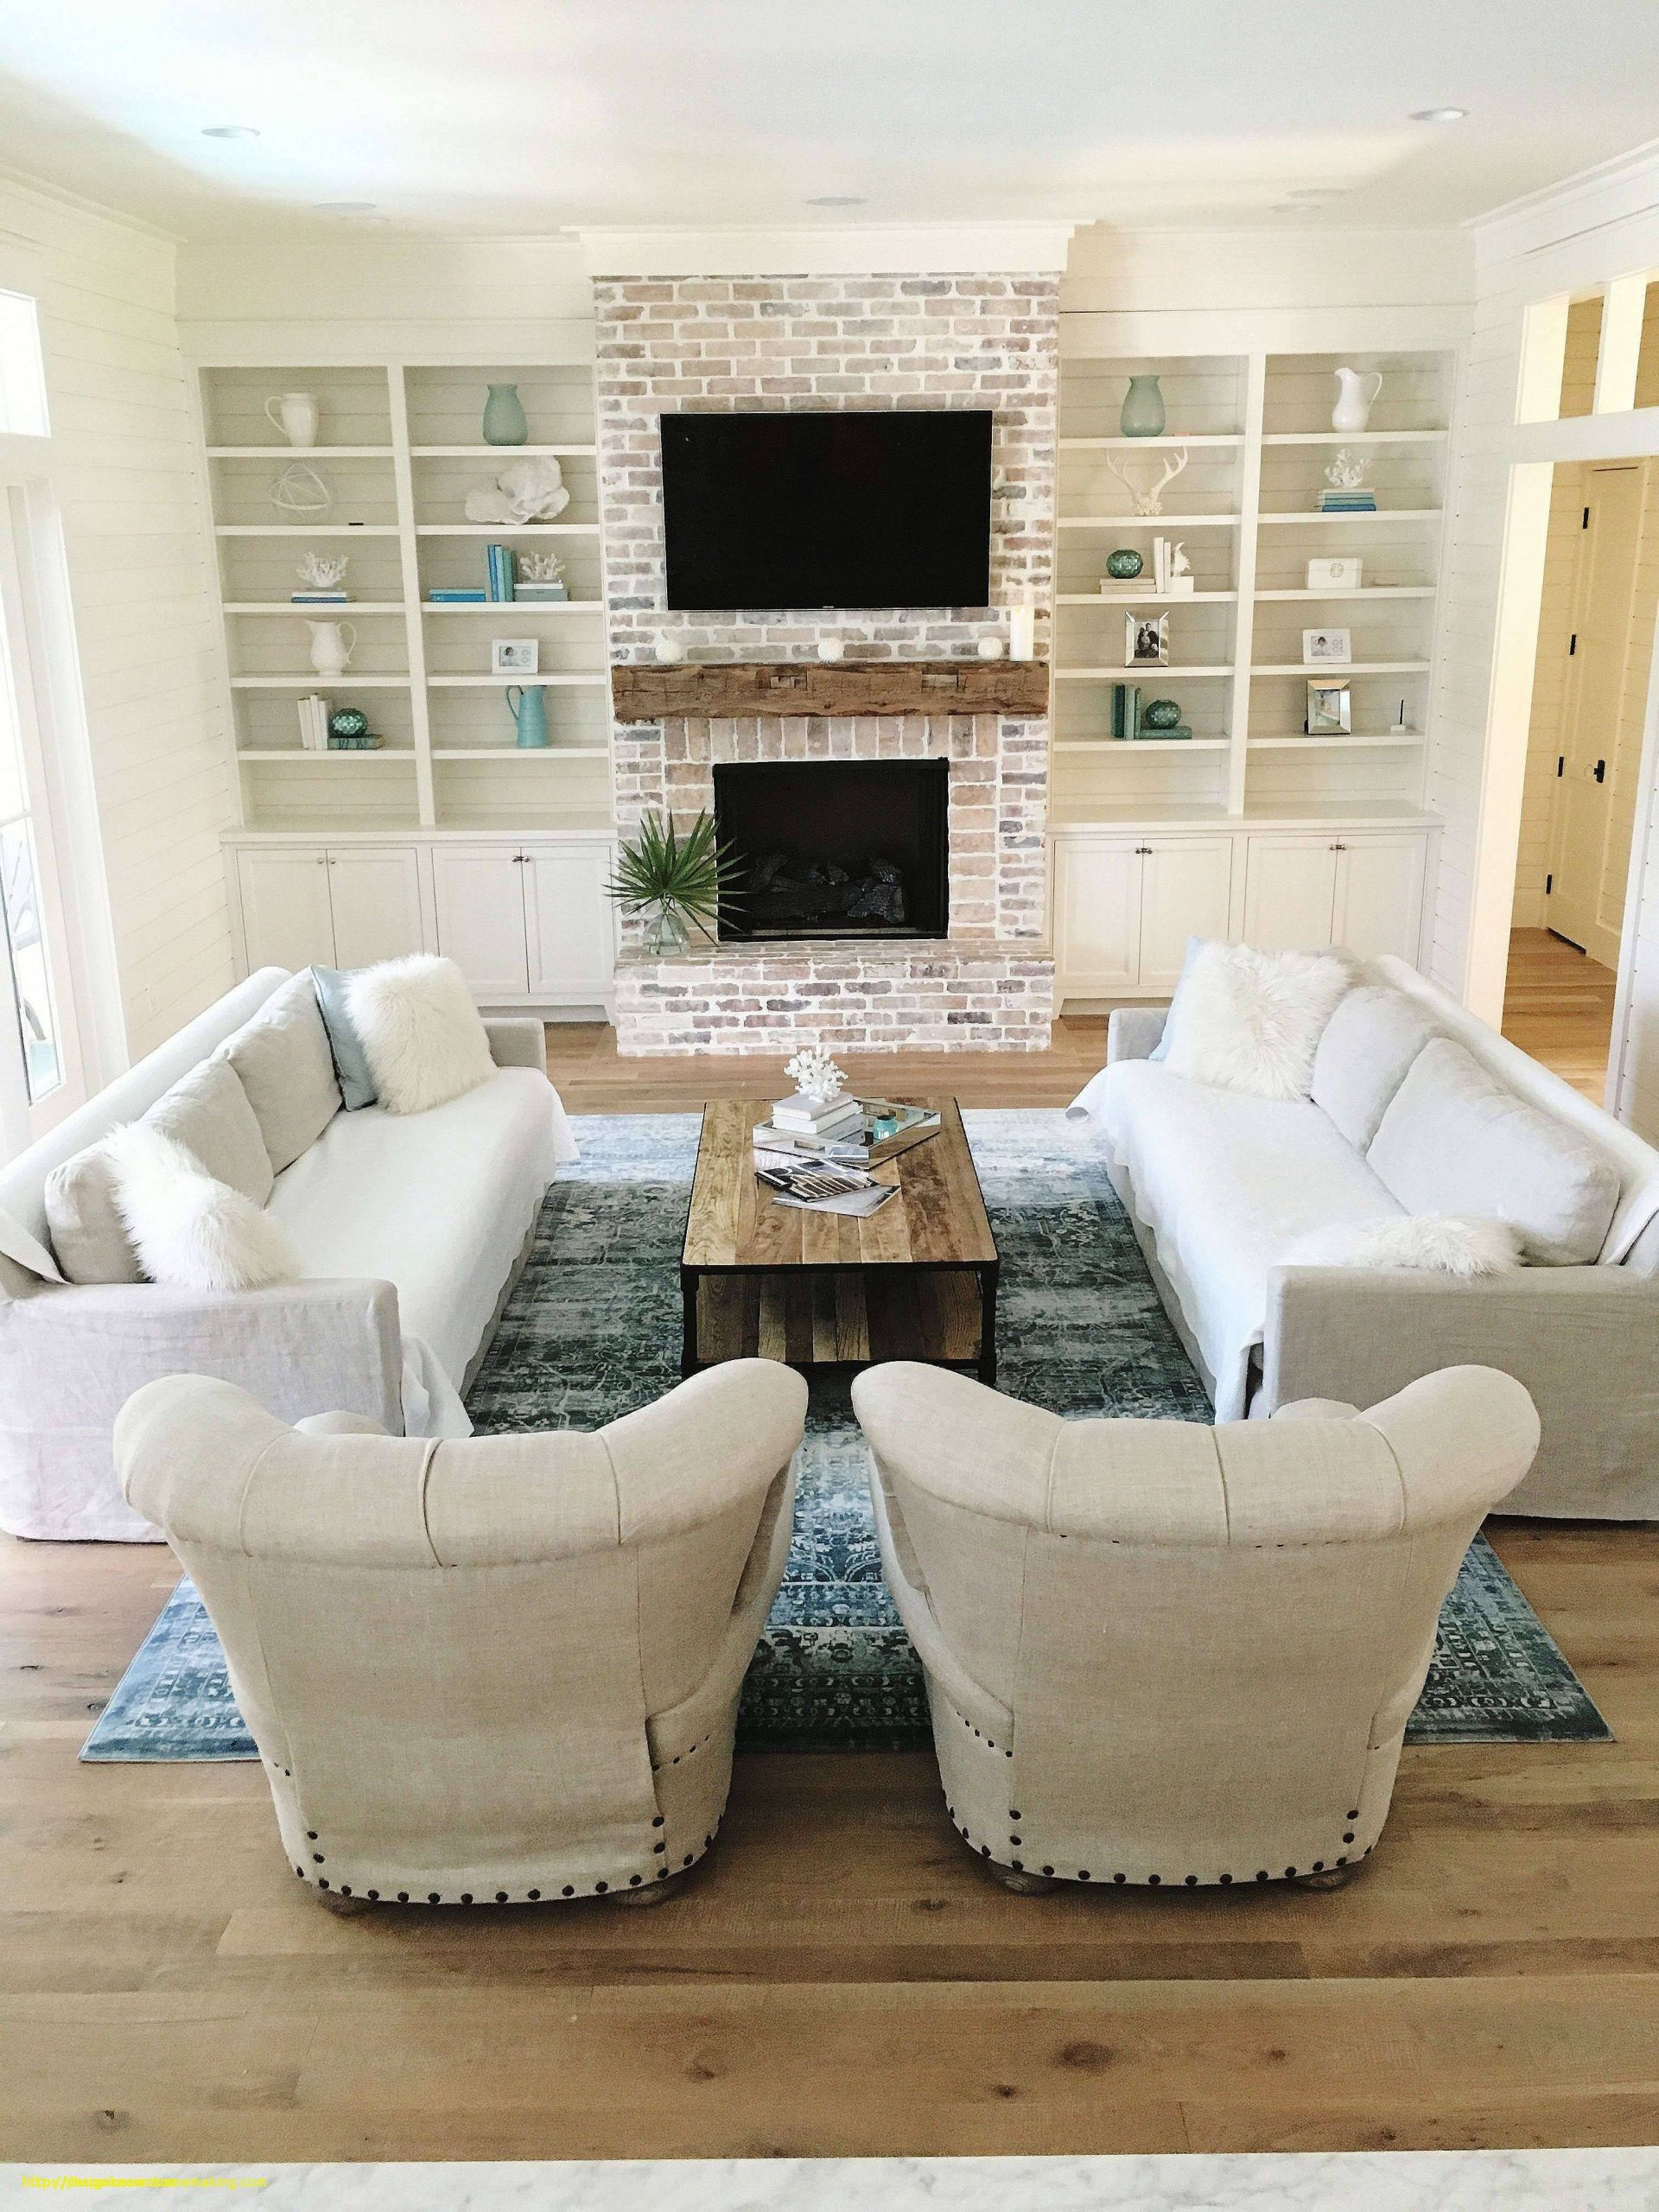 modern interior design for small spaces awesome 44 lovely simple house design interior small spaces living rooms of modern interior design for small spaces